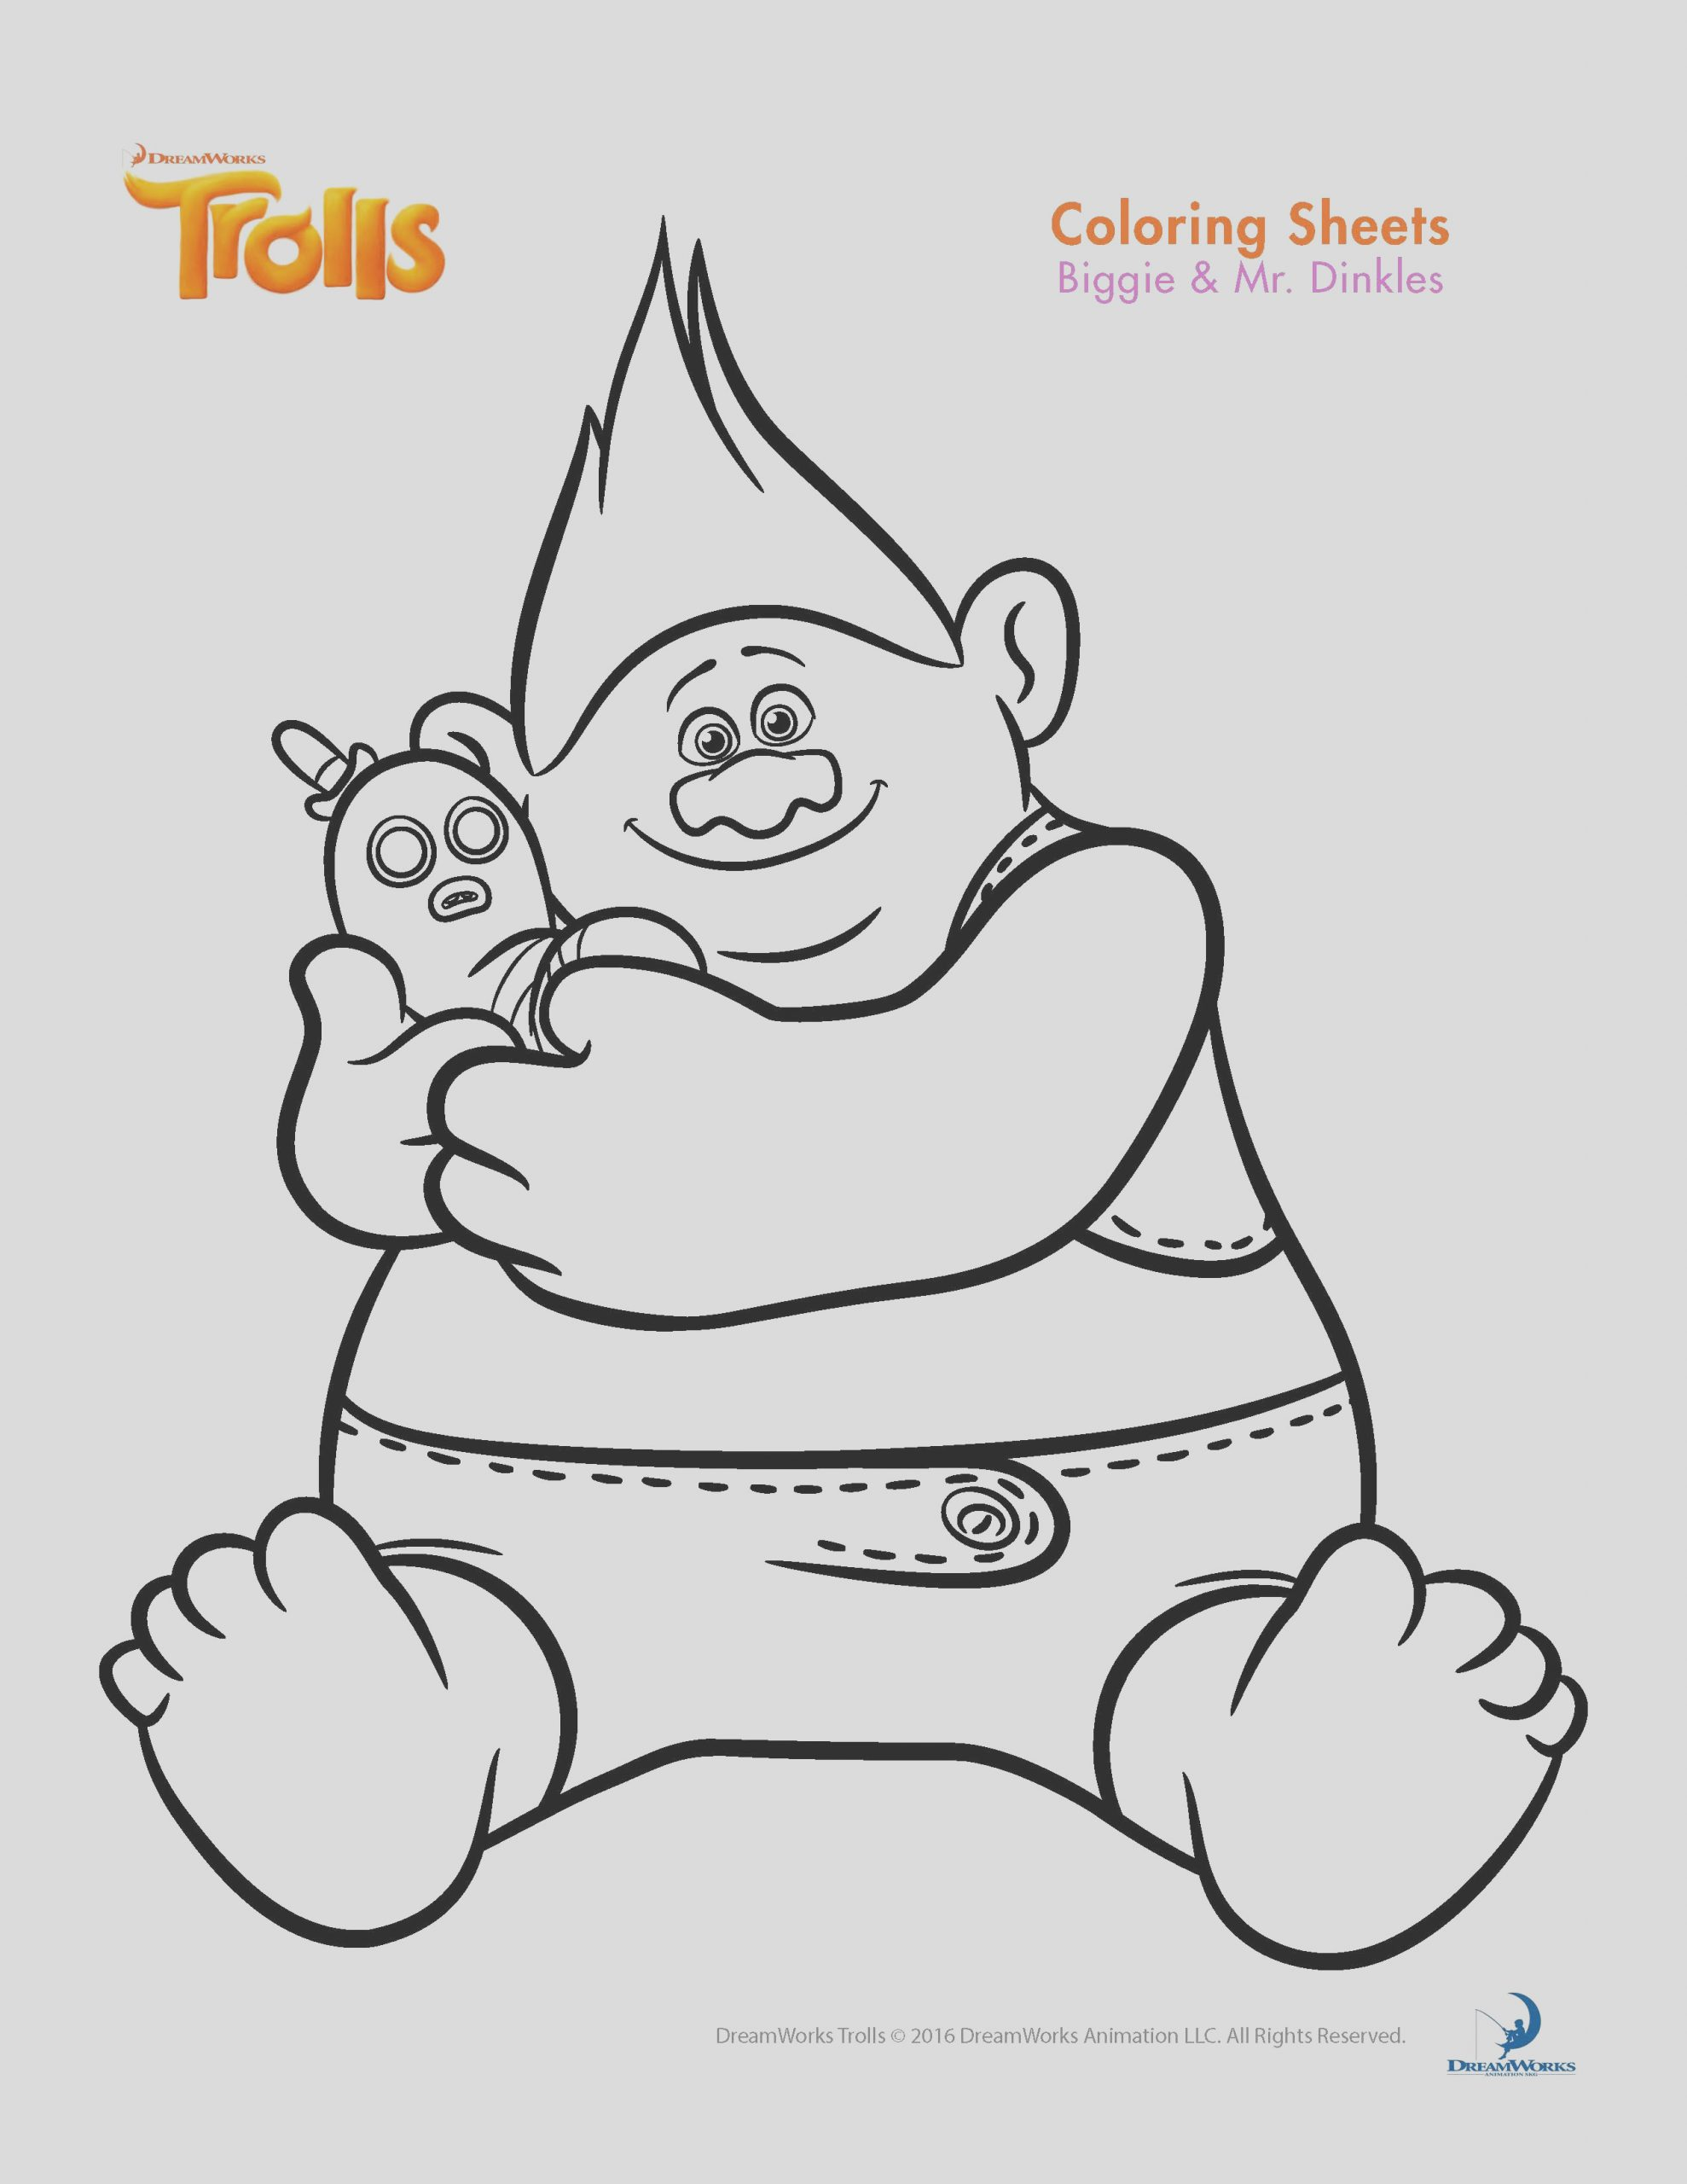 trolls coloring sheets